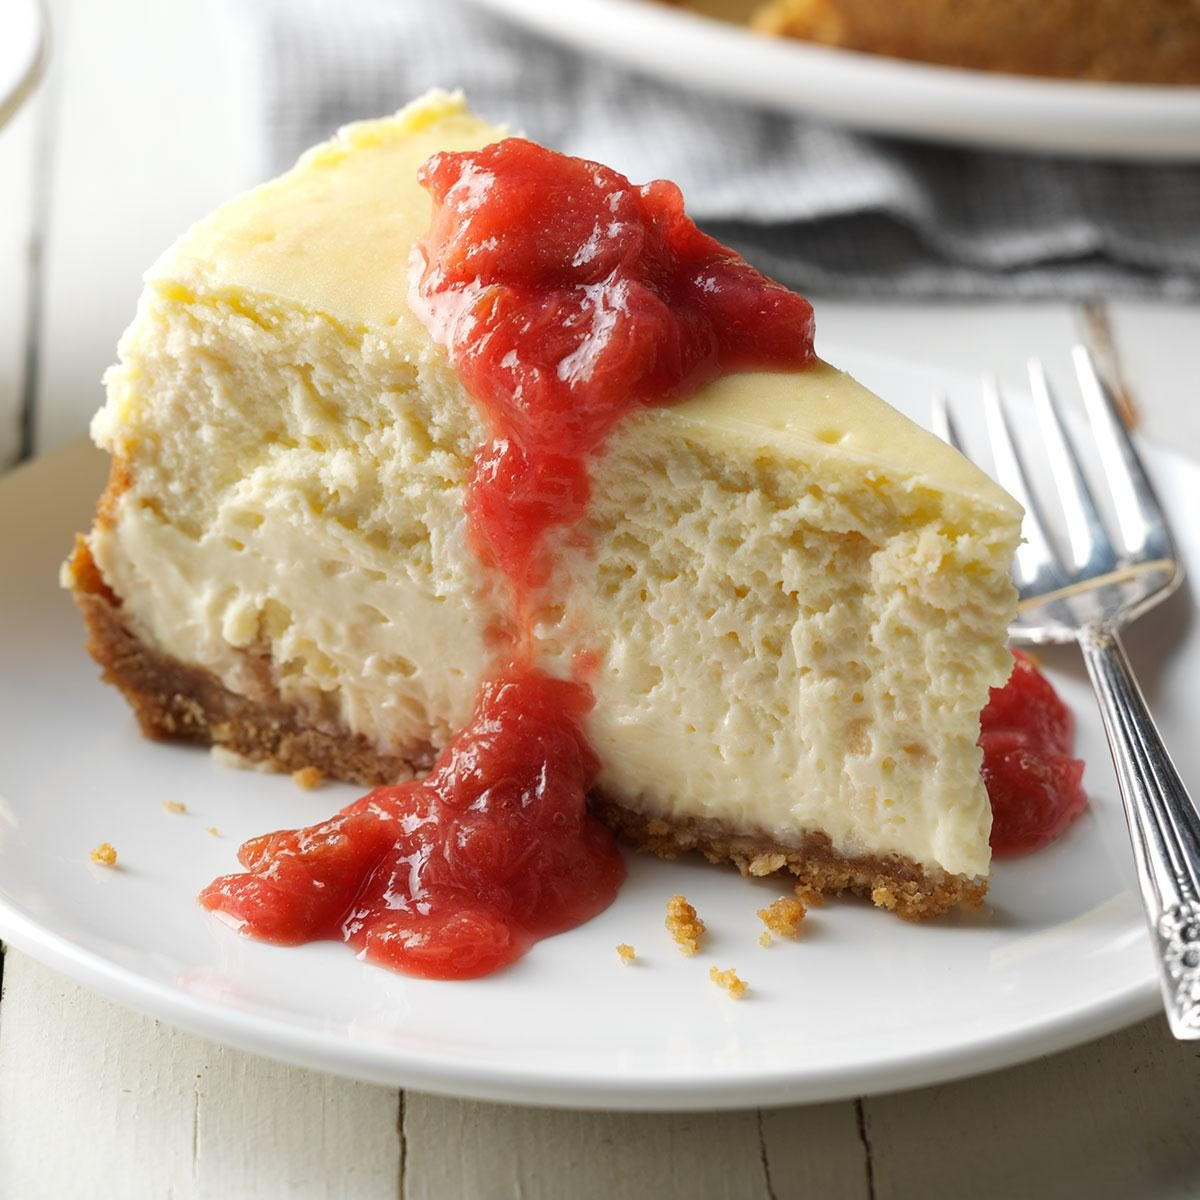 Coconut Cheesecake & Rhubarb Compote